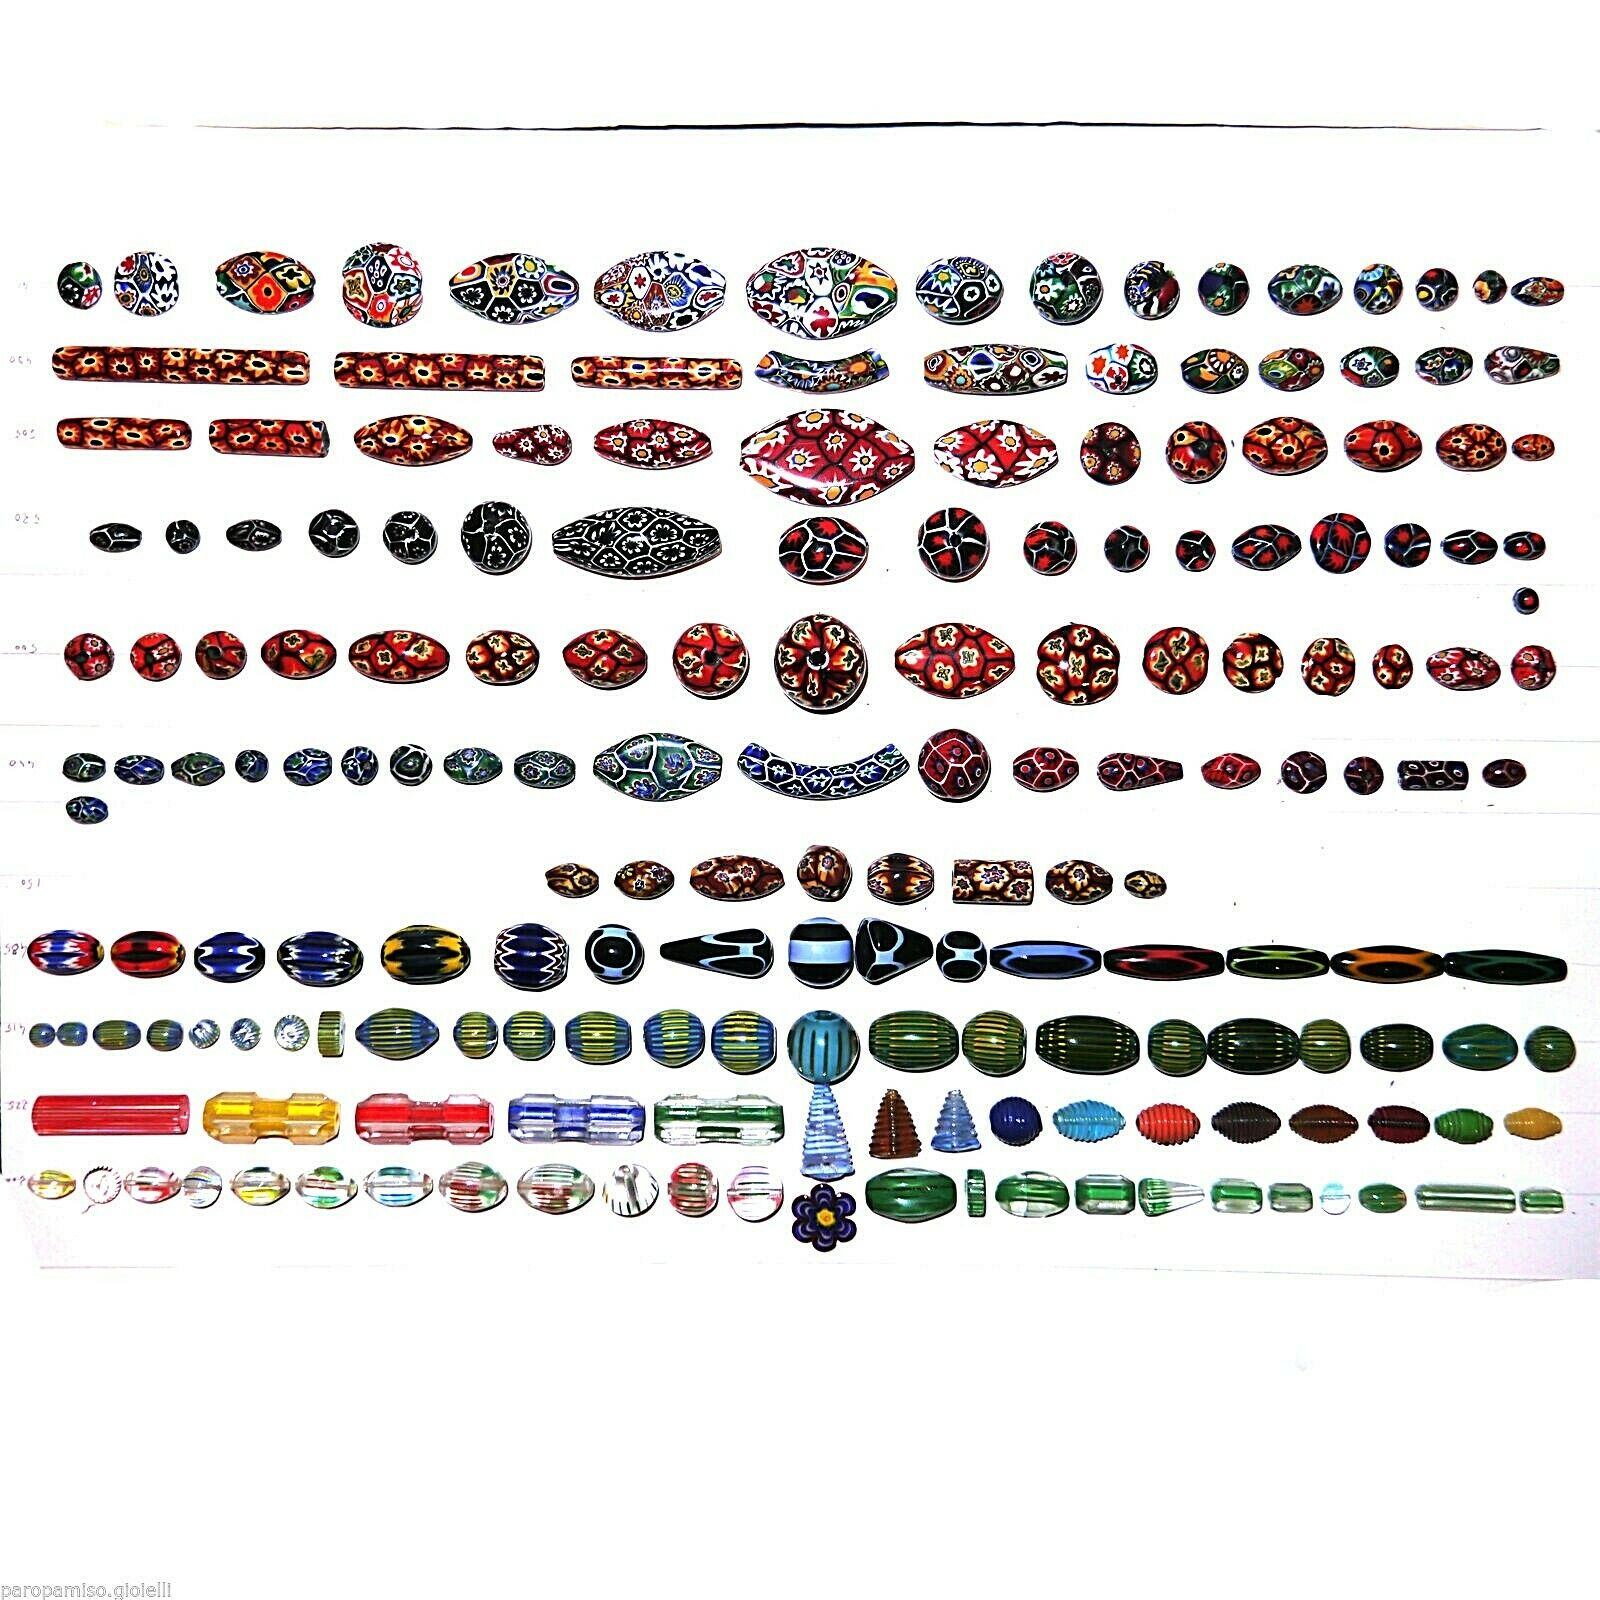 Panel of Moretti's 1920s-1930s Murrine Mosaico and Ground Glass Beads (0858)